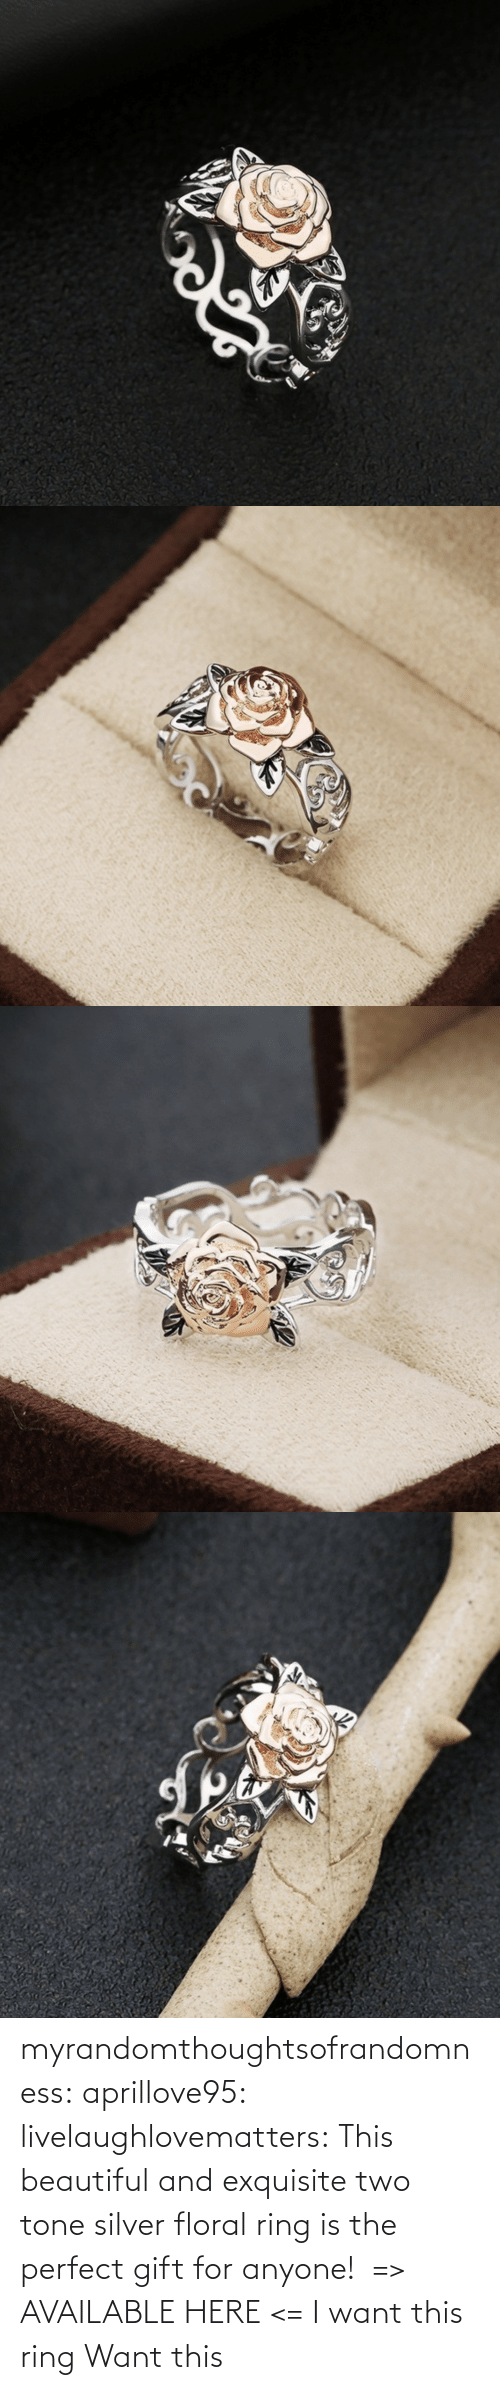 ring: myrandomthoughtsofrandomness:  aprillove95: livelaughlovematters:  This beautiful and exquisite two tone silver floral ring is the perfect gift for anyone!  => AVAILABLE HERE <=    I want this ring     Want this